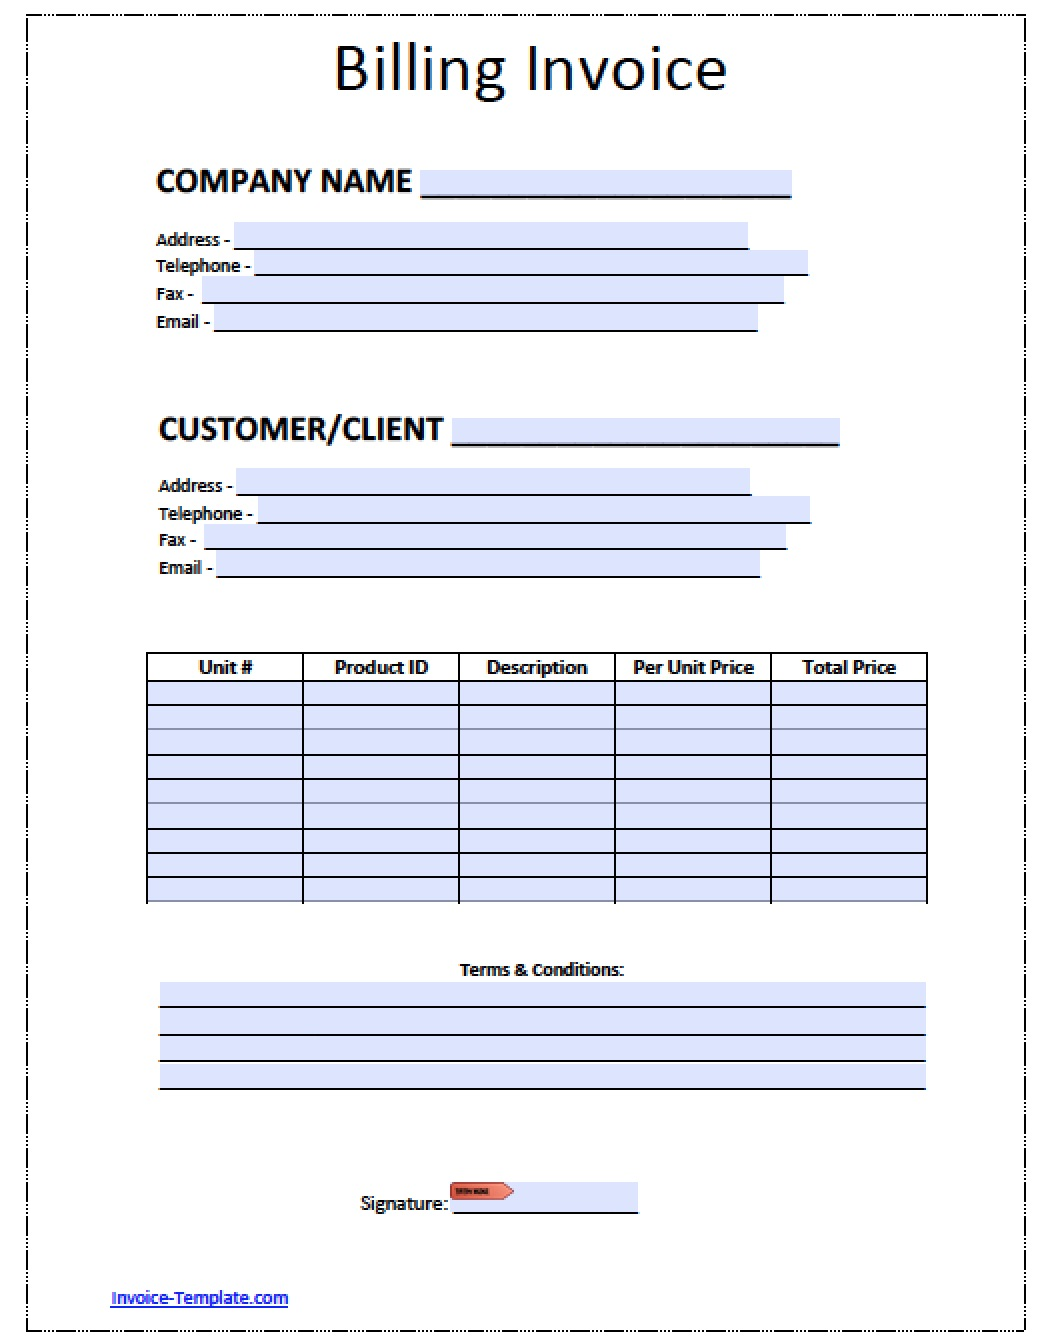 Free Billing Invoice Template Excel PDF Word Doc - Free download invoice template excel